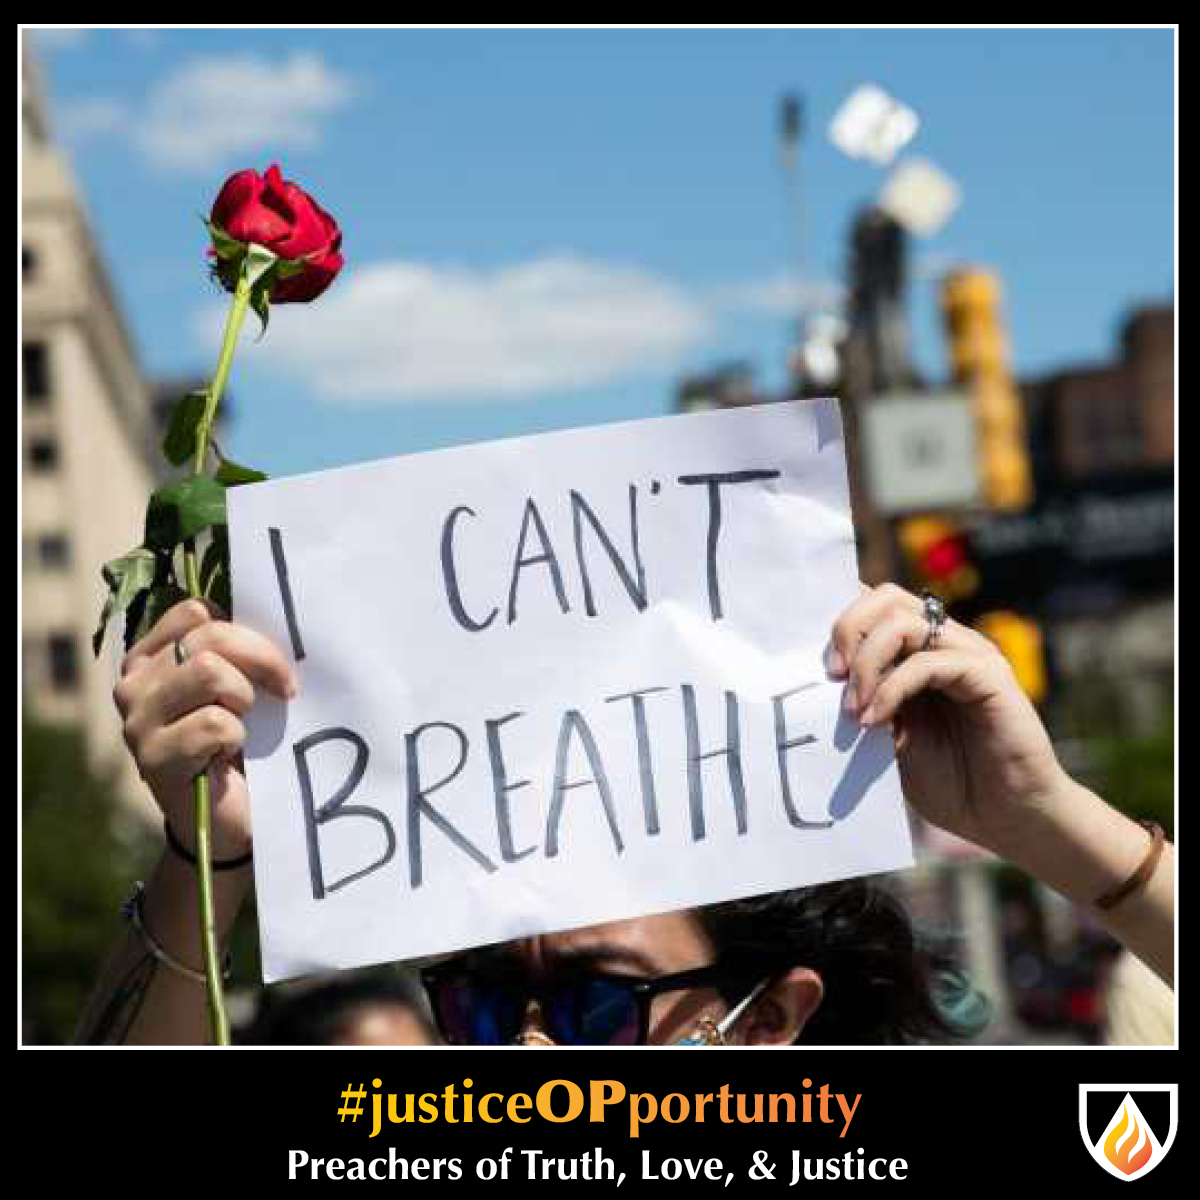 #justiceOPportunity Thursday: June 4, 2020